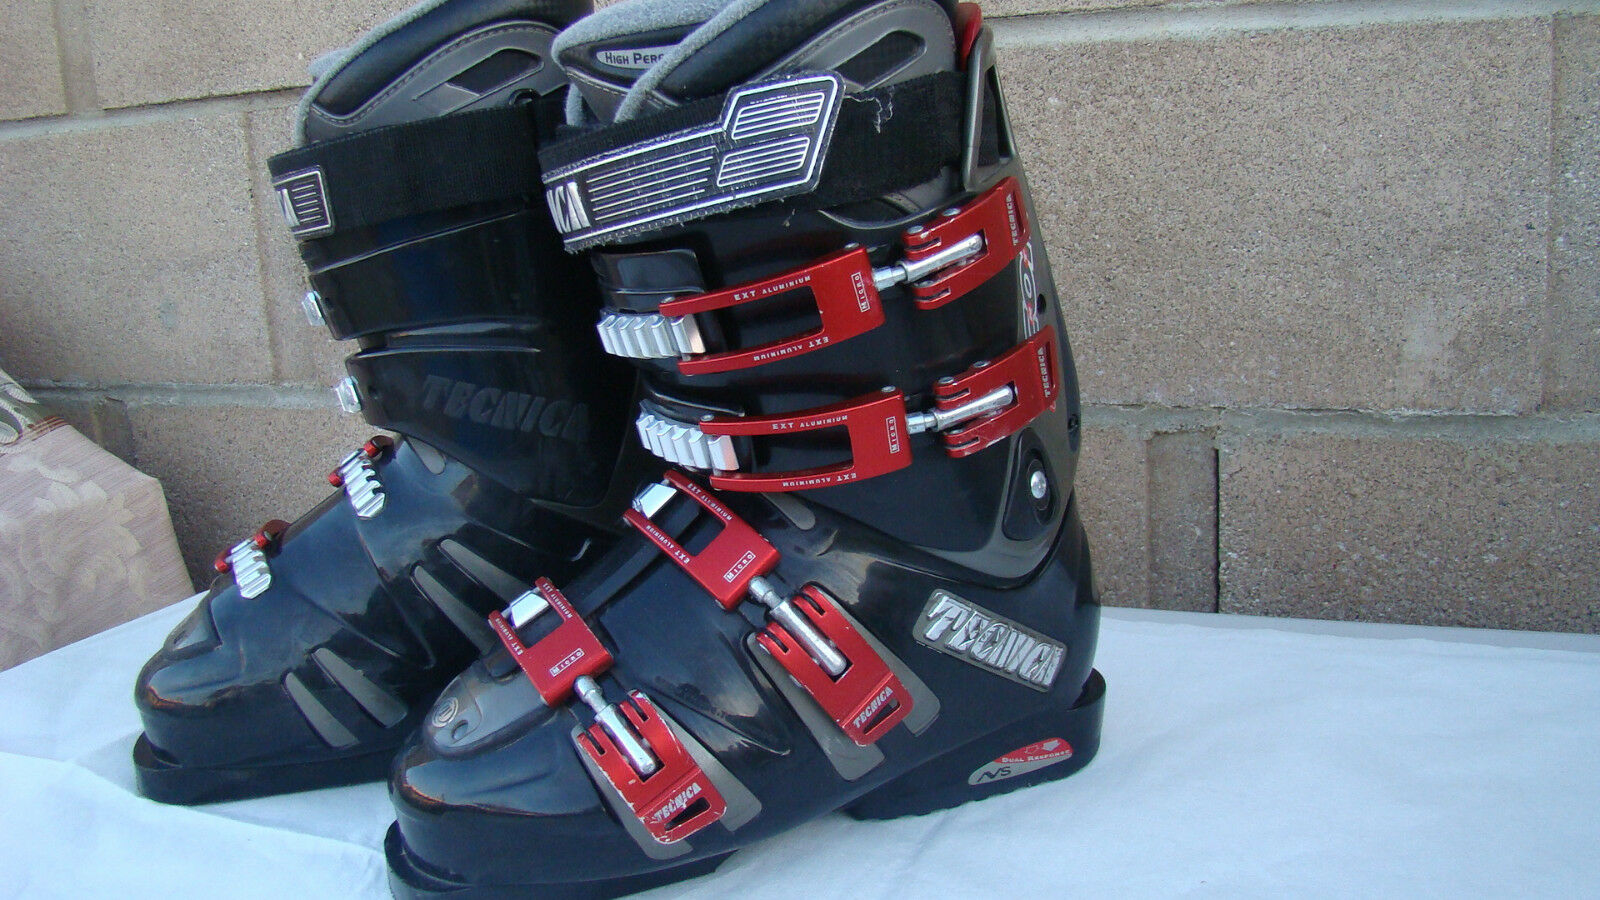 Tecnica TNT Icon XR Ski boots size 6.5 US men's